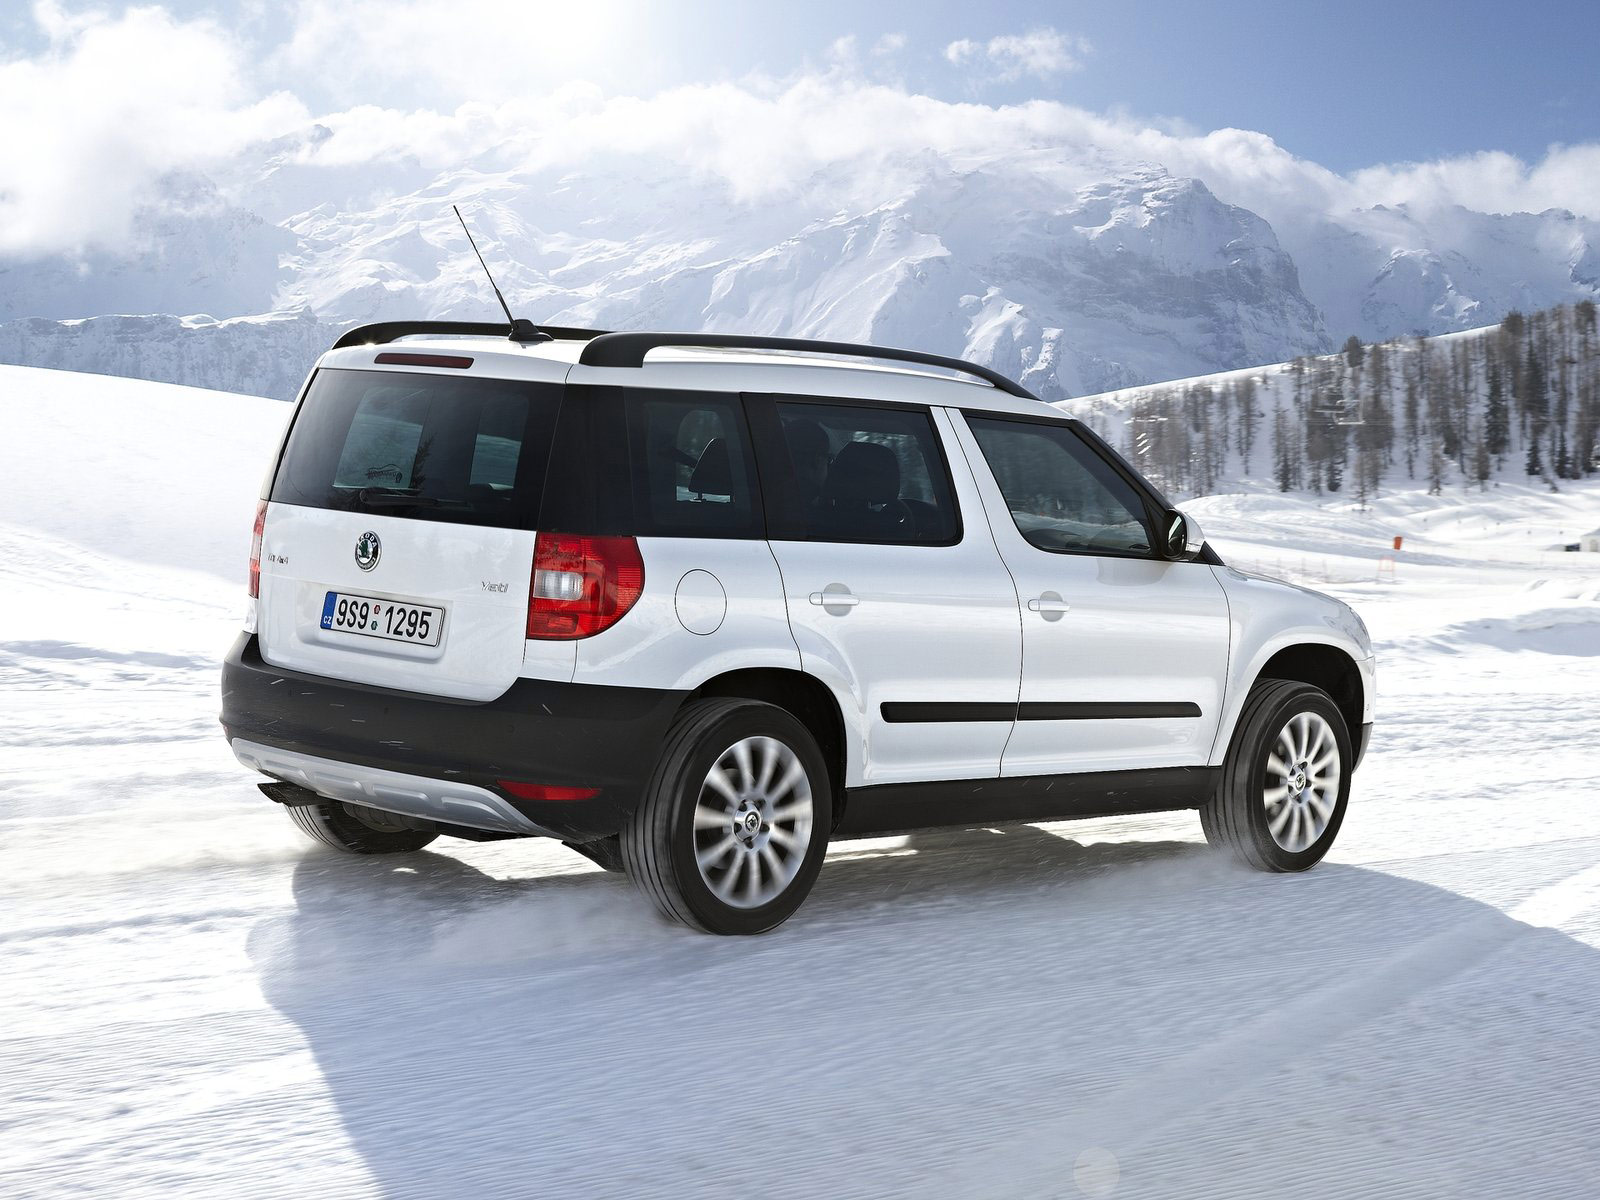 2011 skoda yeti 4x4 car wallpaper car review. Black Bedroom Furniture Sets. Home Design Ideas